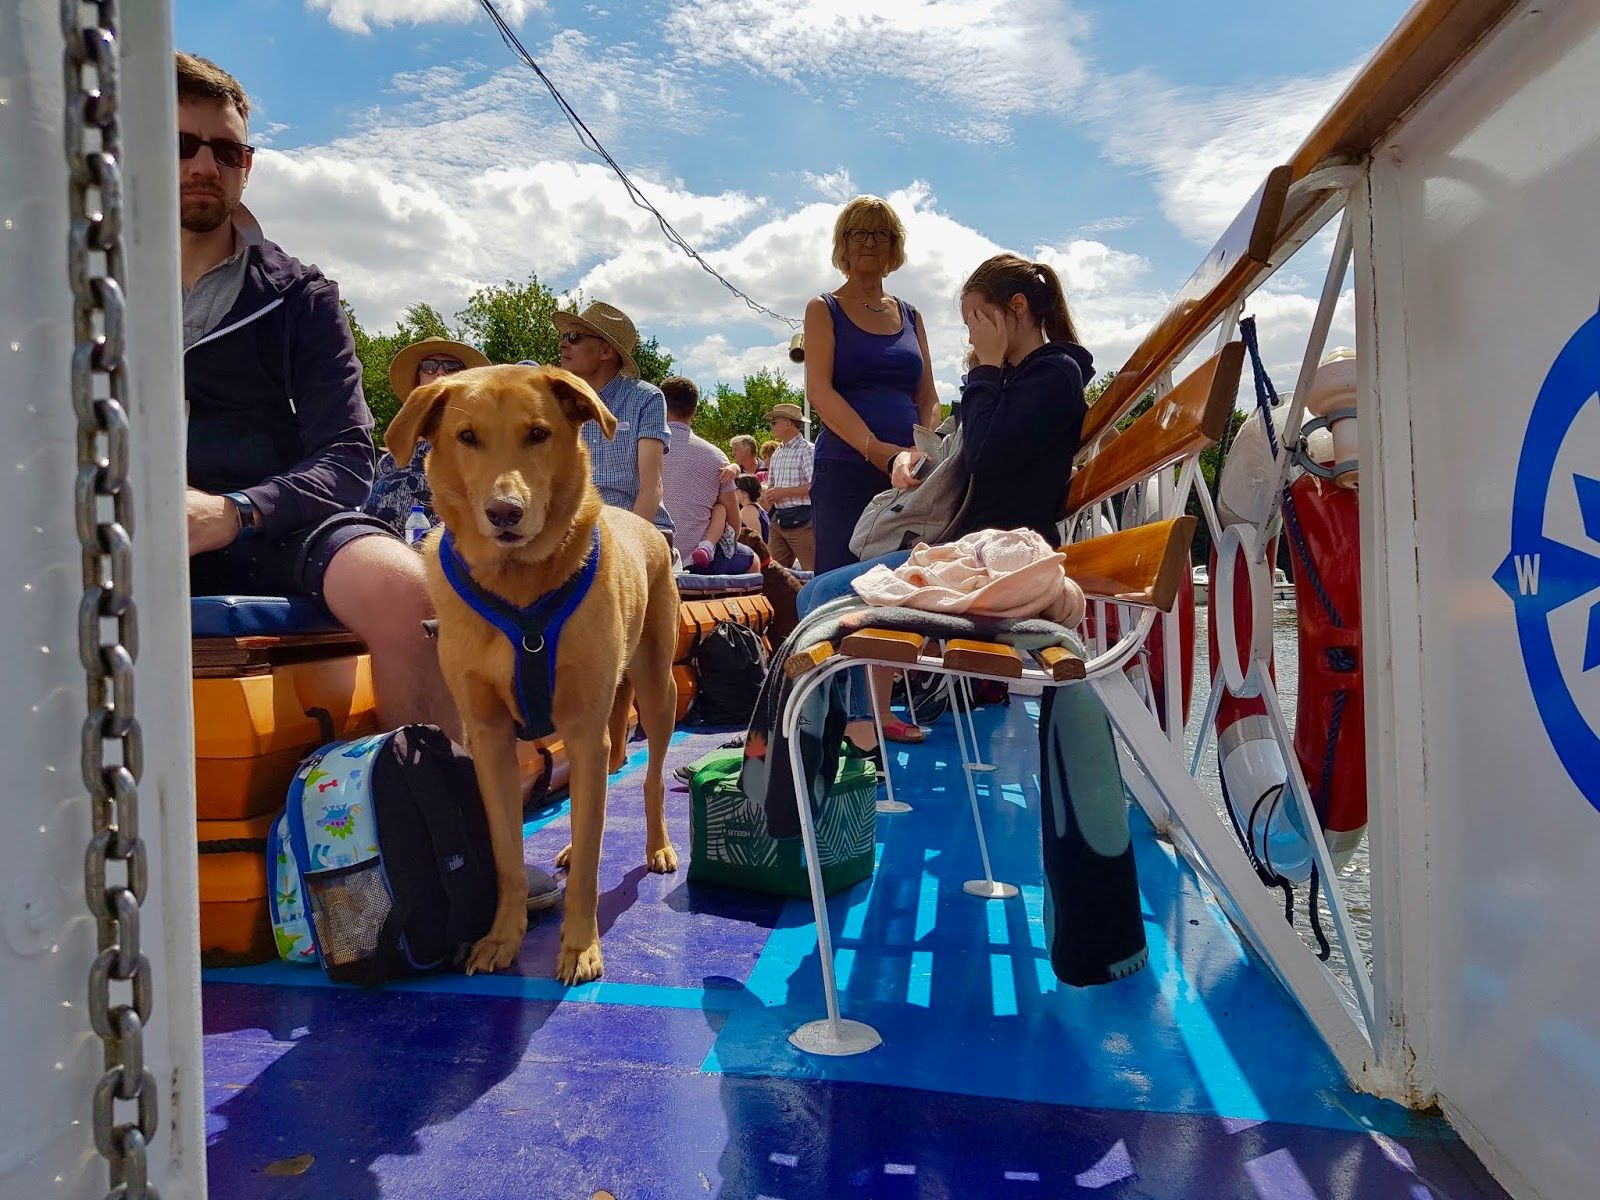 deck of the cruise boat with passengers and dog